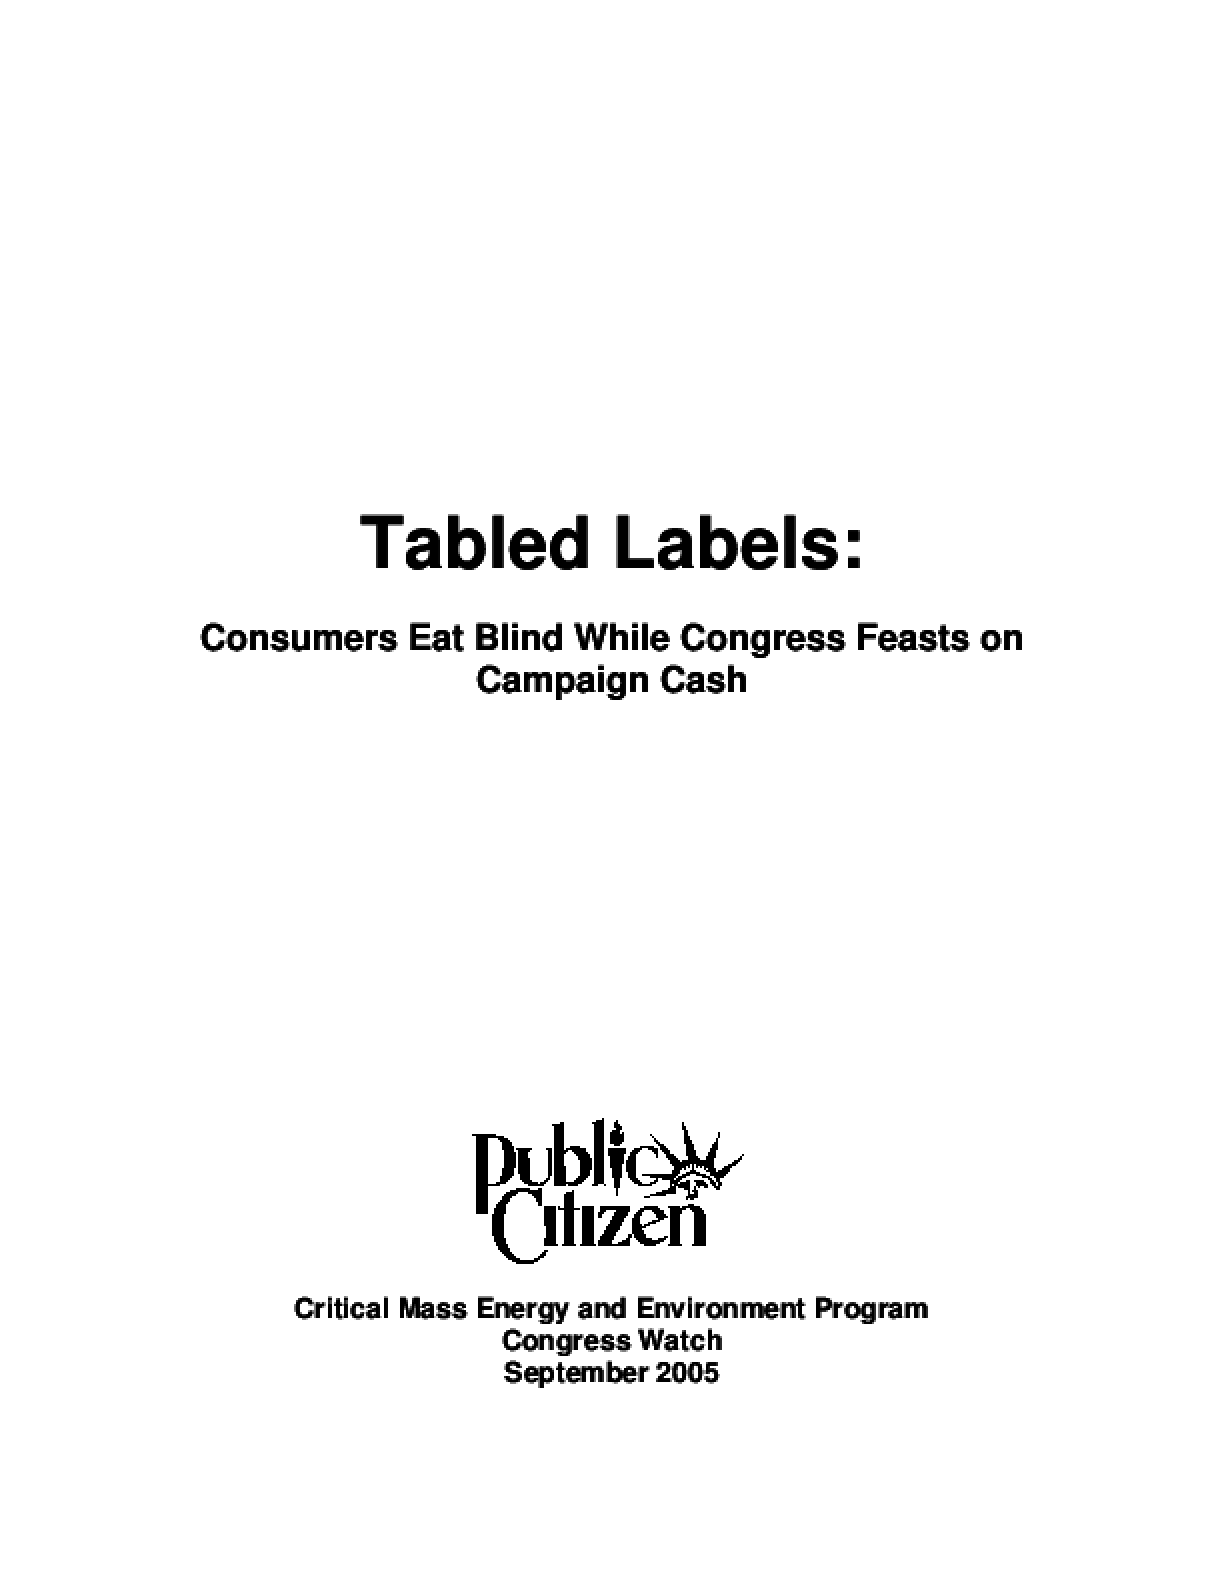 Tabled Labels: Consumers Eat Blind While Congress Feasts on Campaign Cash